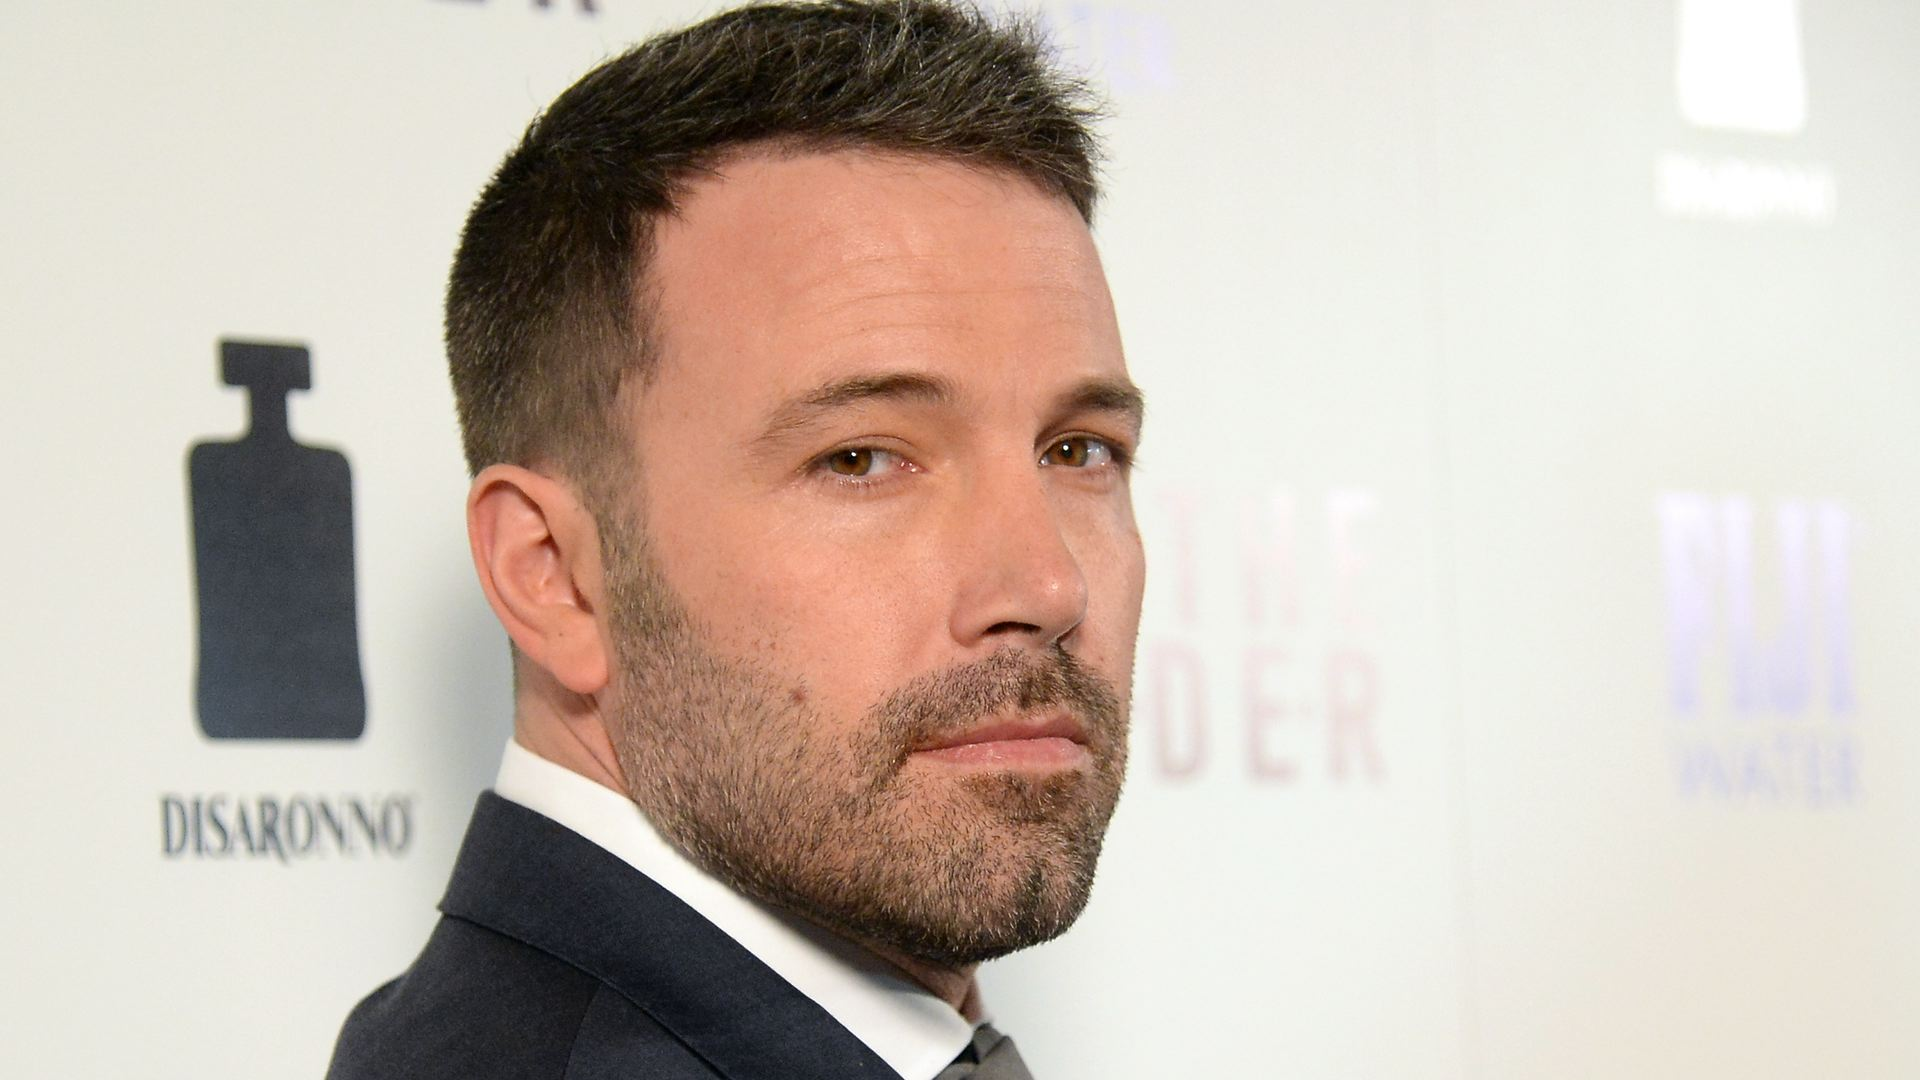 ben-affleck-is-a-douchebag